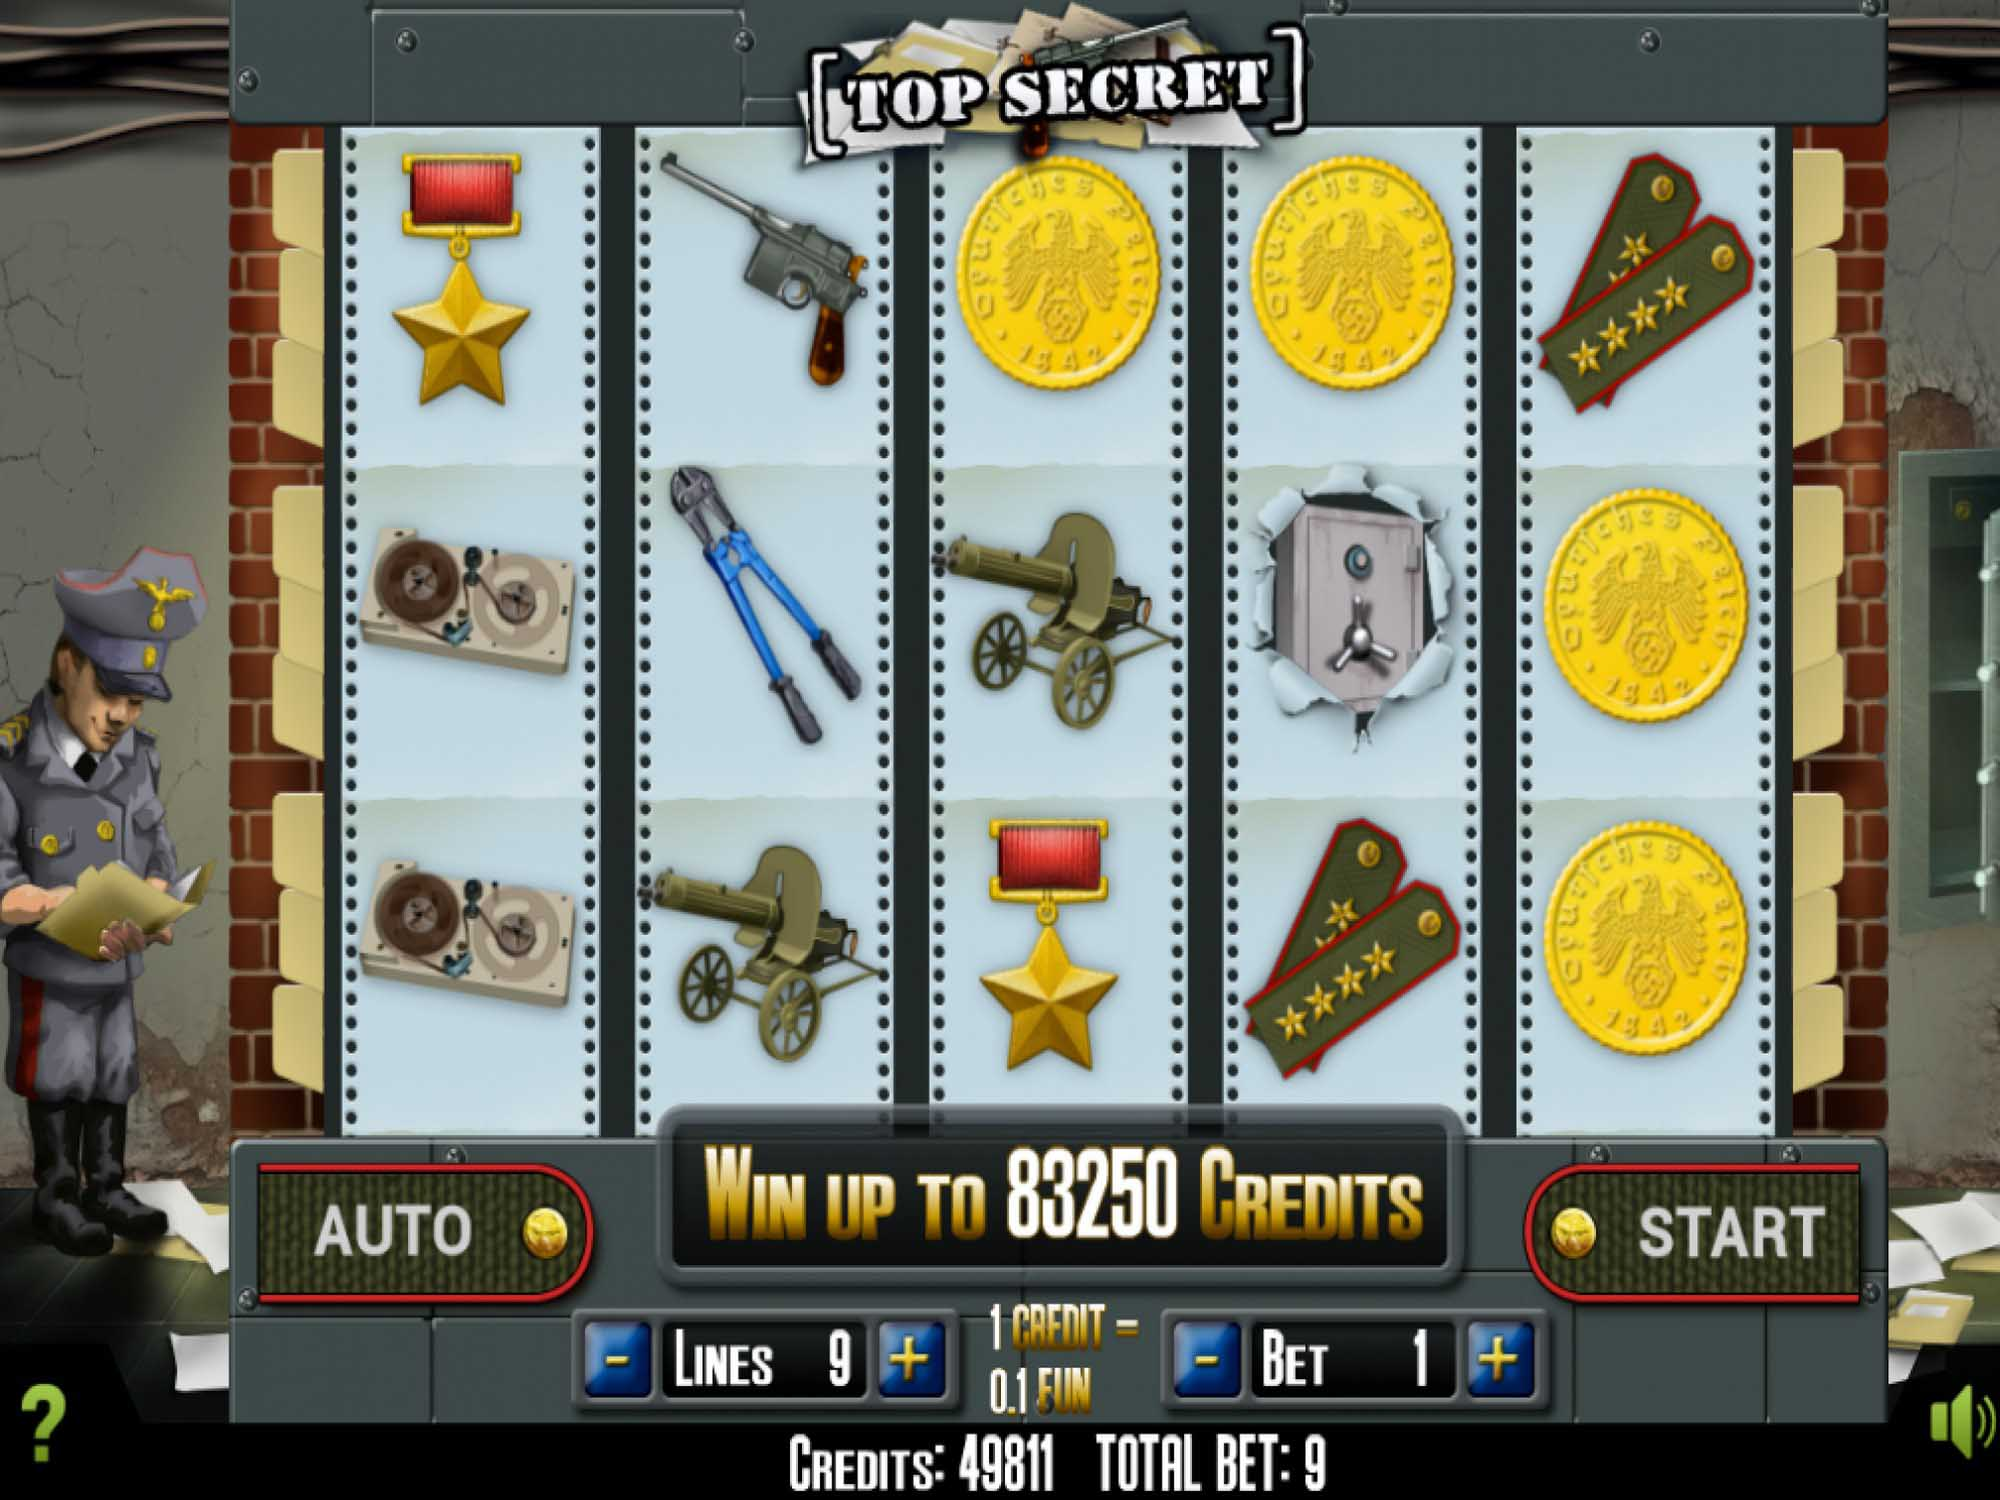 Top Secret slot